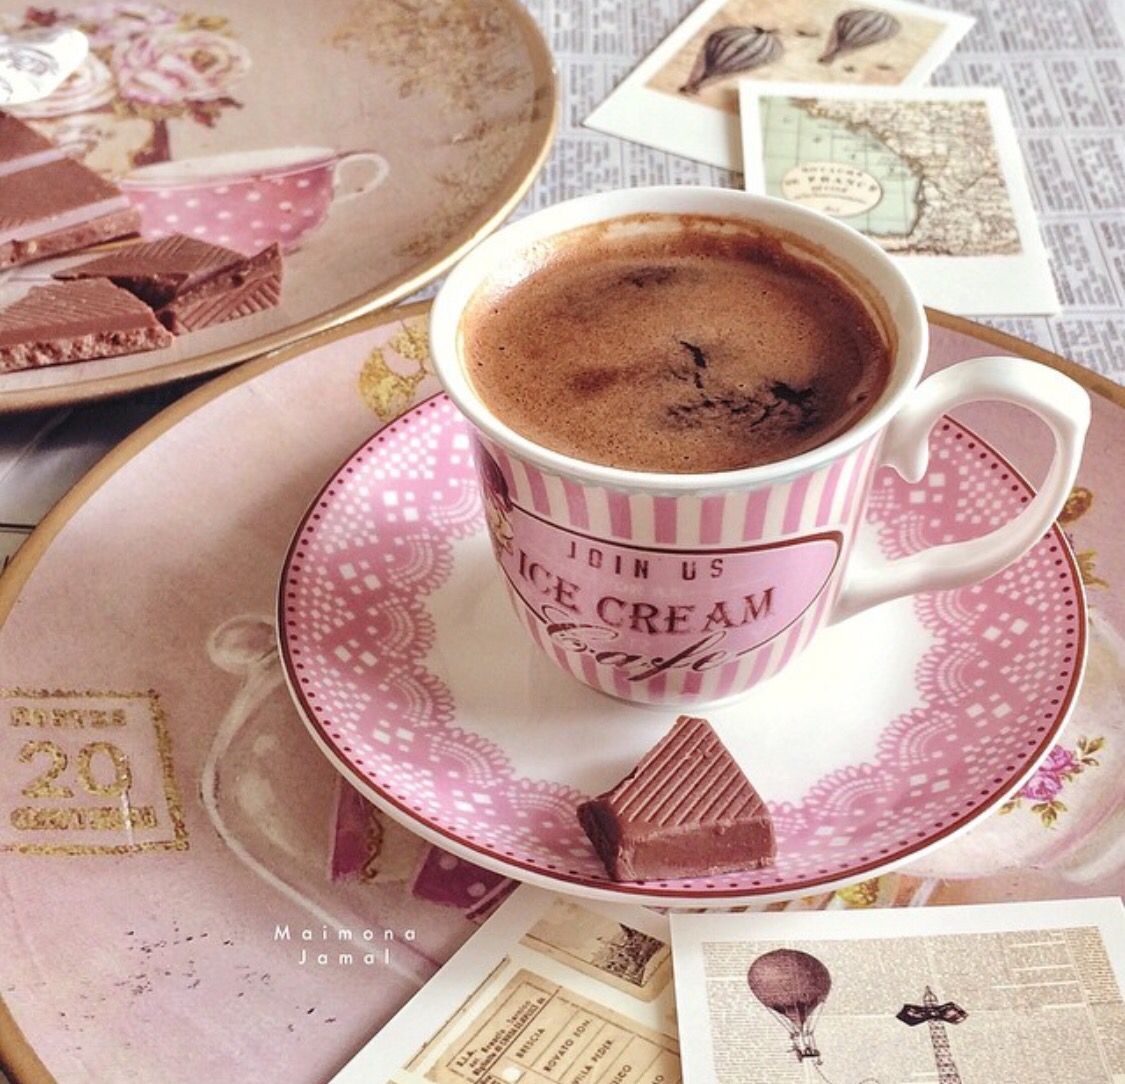 Have some #Pink with your coffee and chocolate.